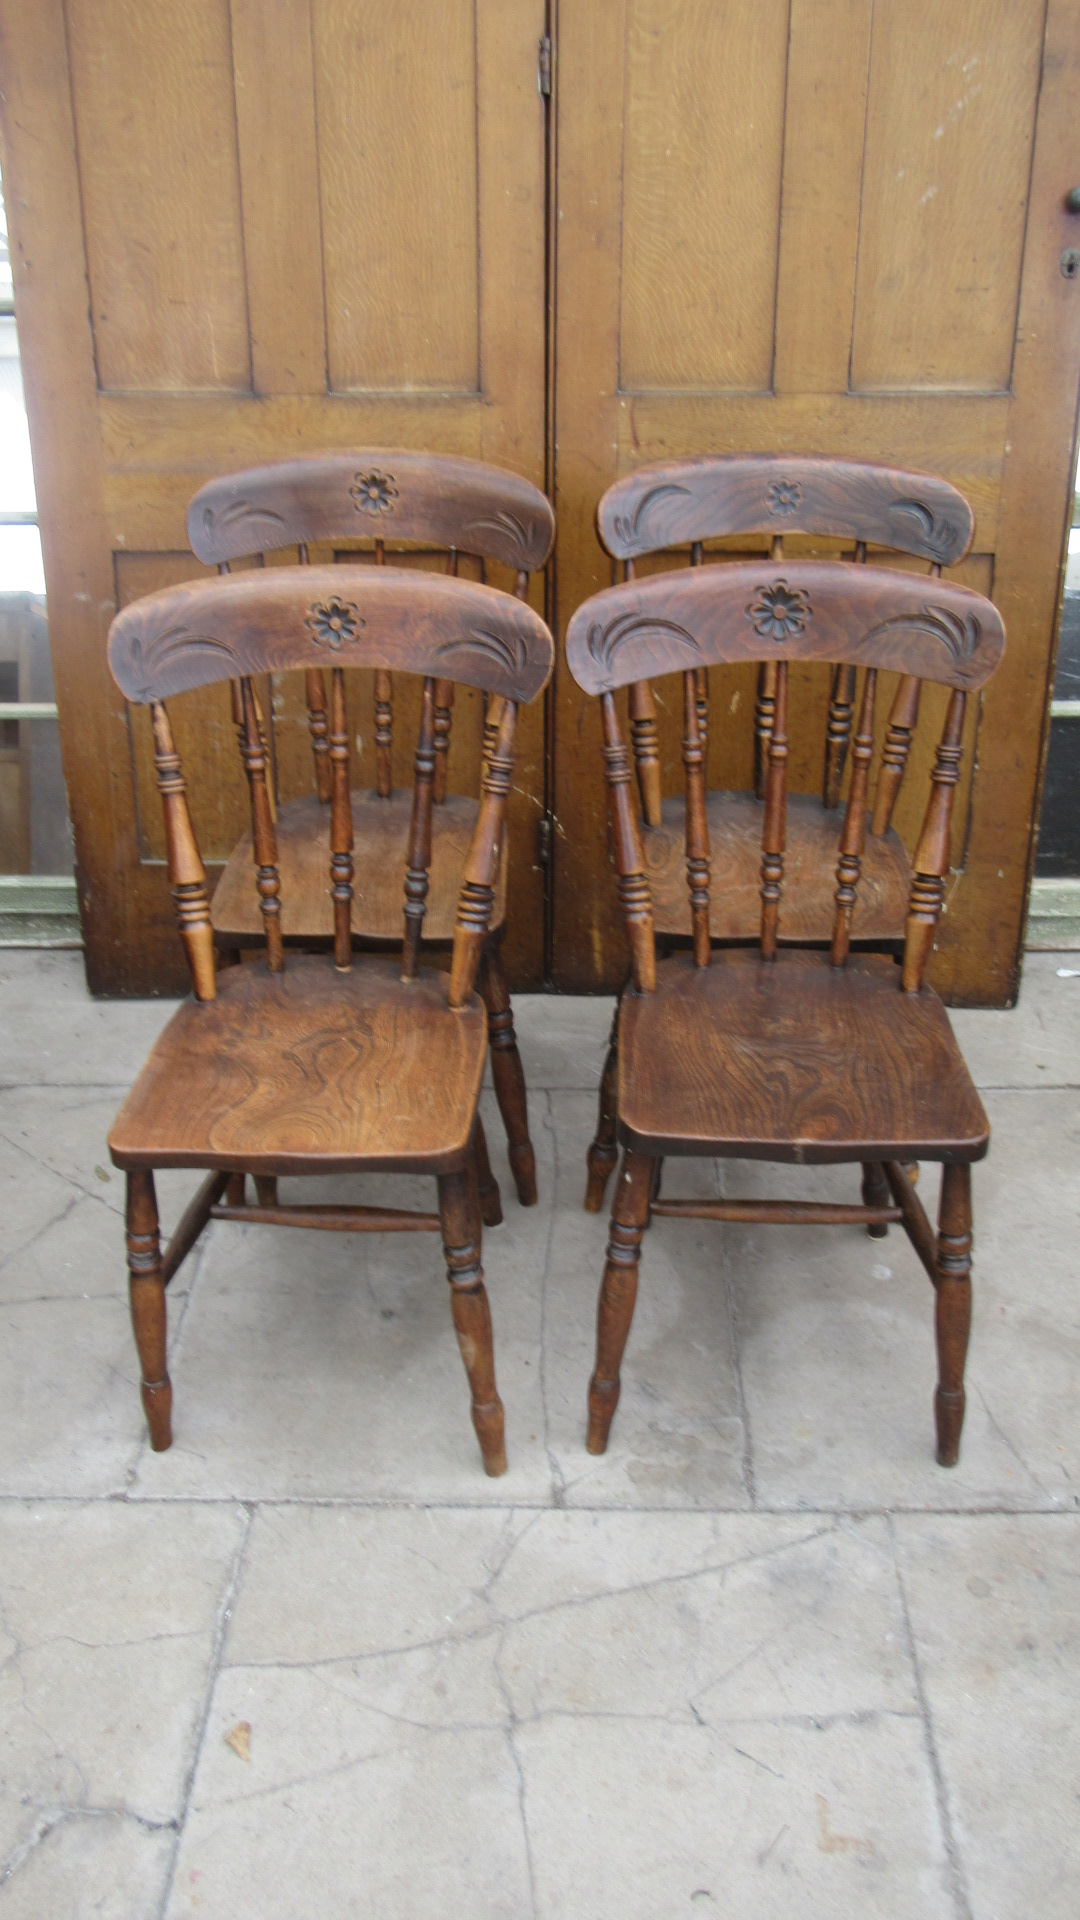 FOUR ANTIQUE WEST COUNTRY ELM DINING CHAIRS